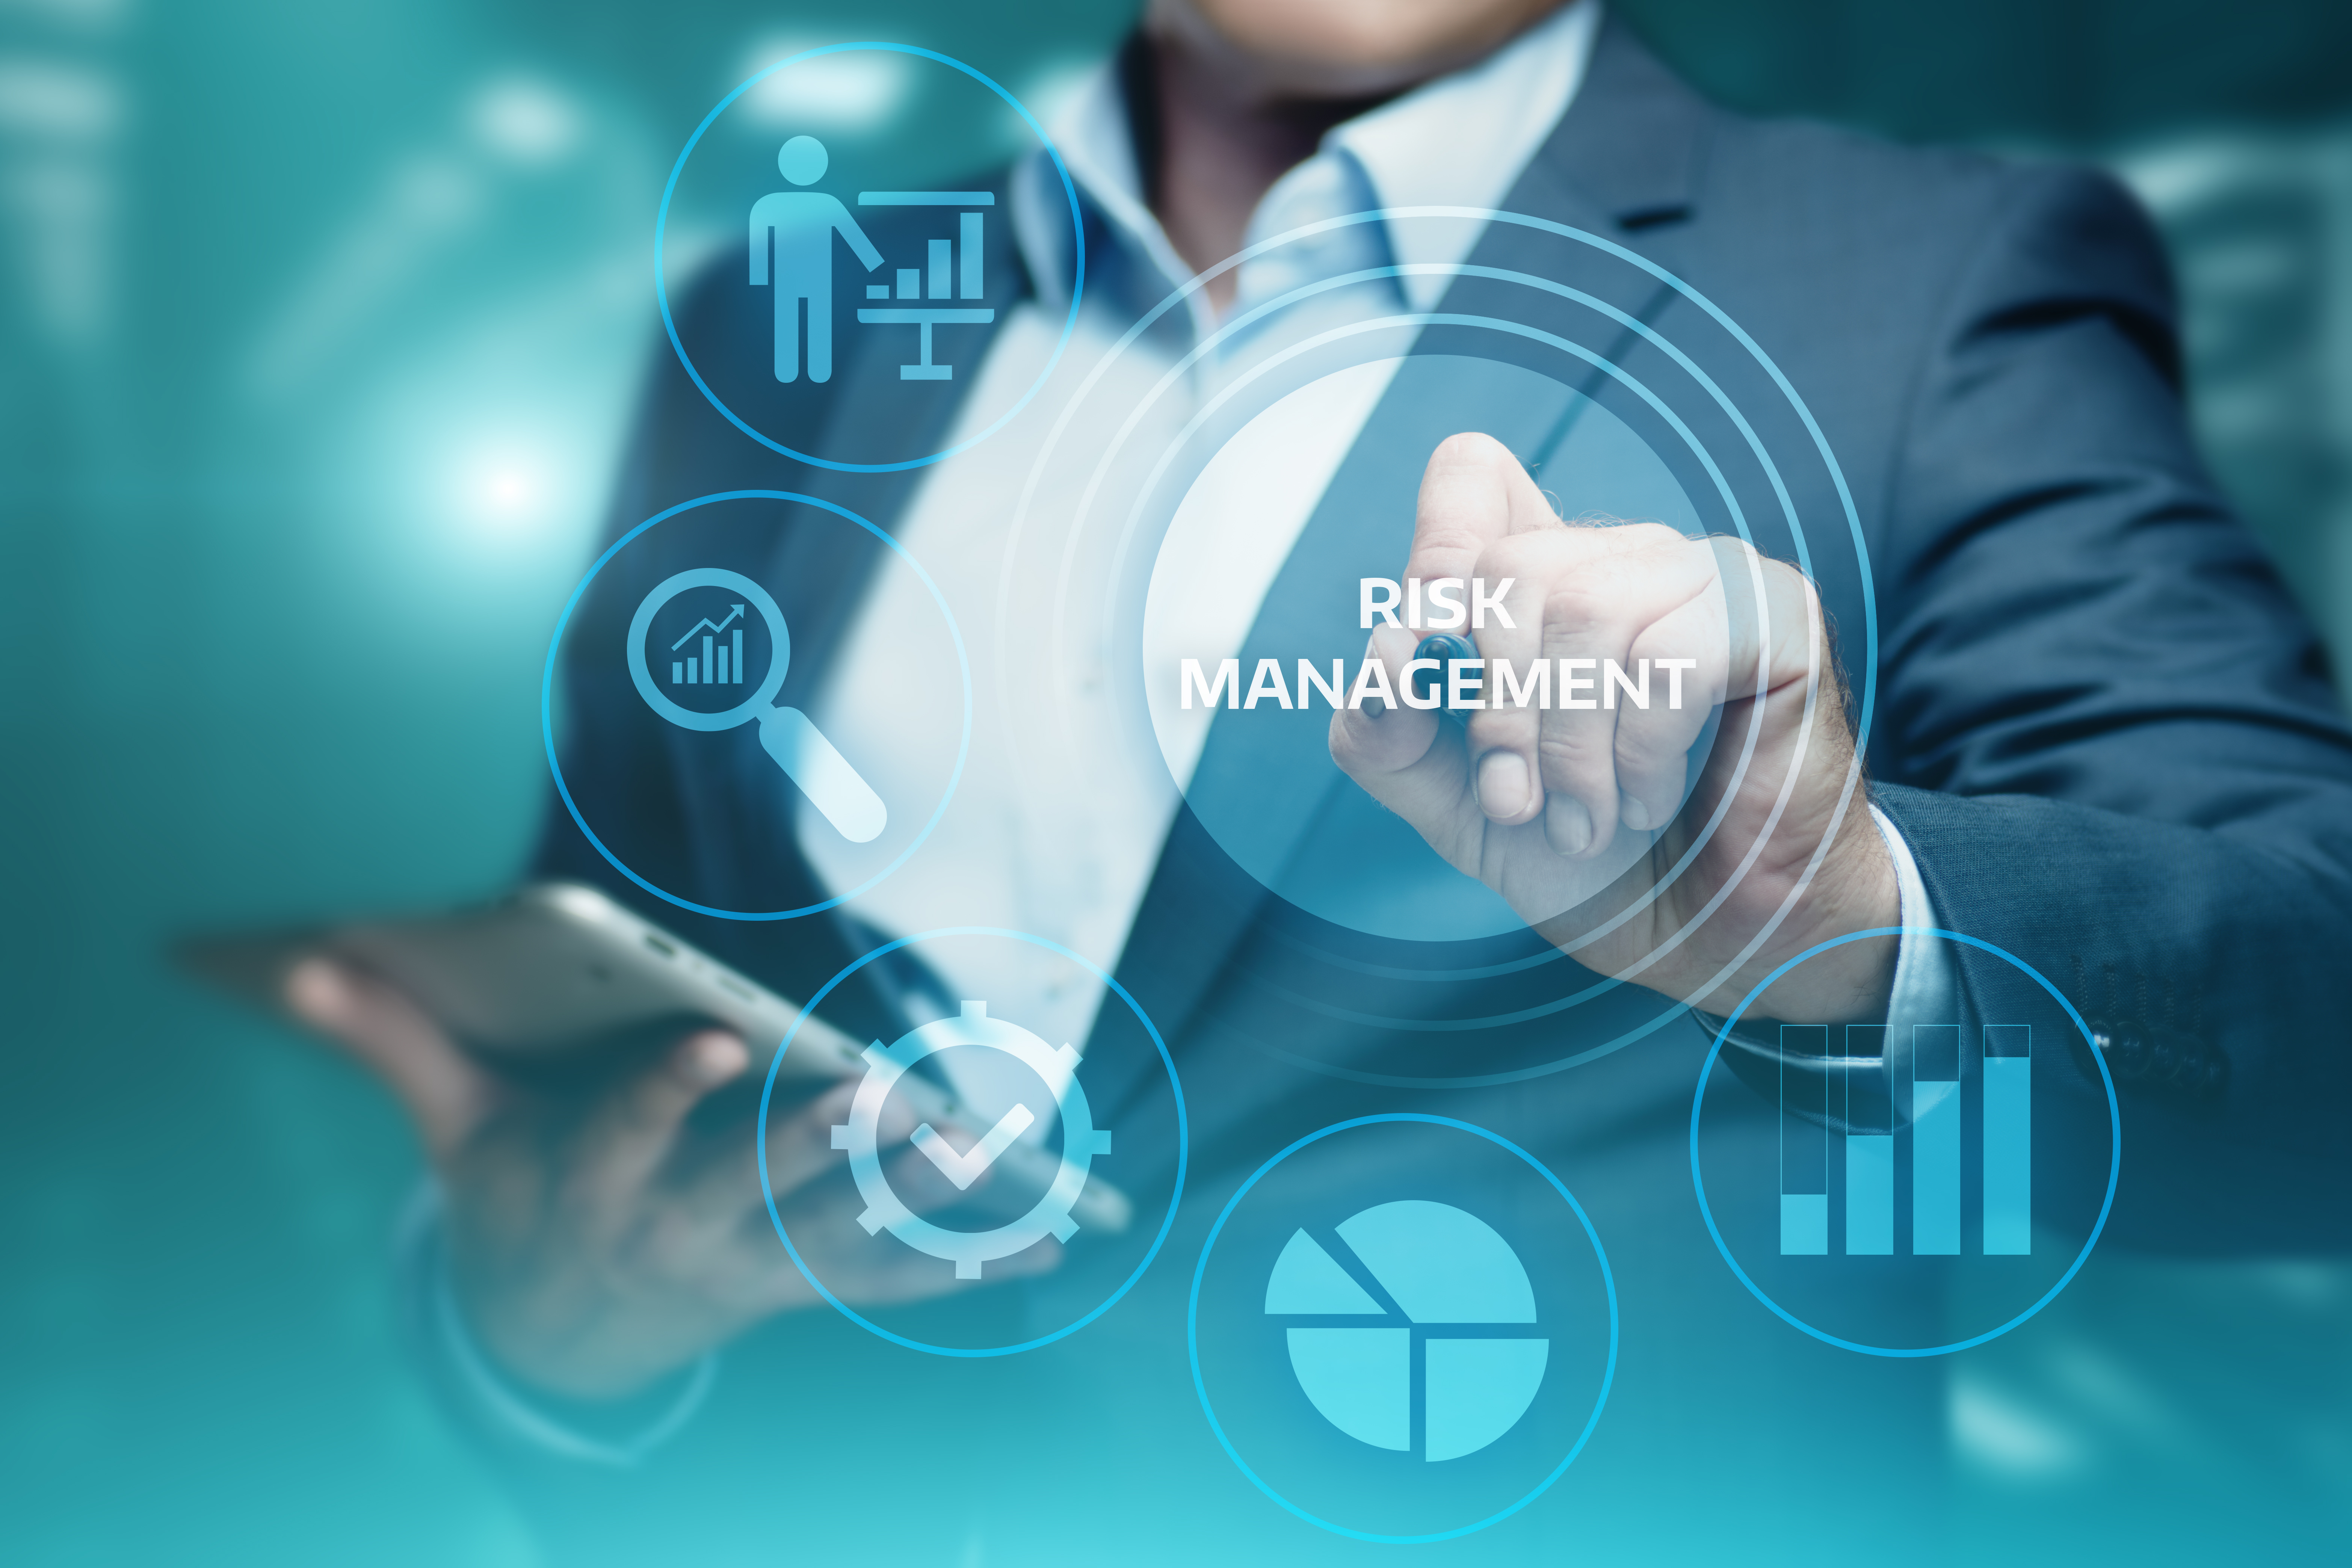 CHANGE AND RISK MANAGEMENT IN SOFTWARE ENGINEERING